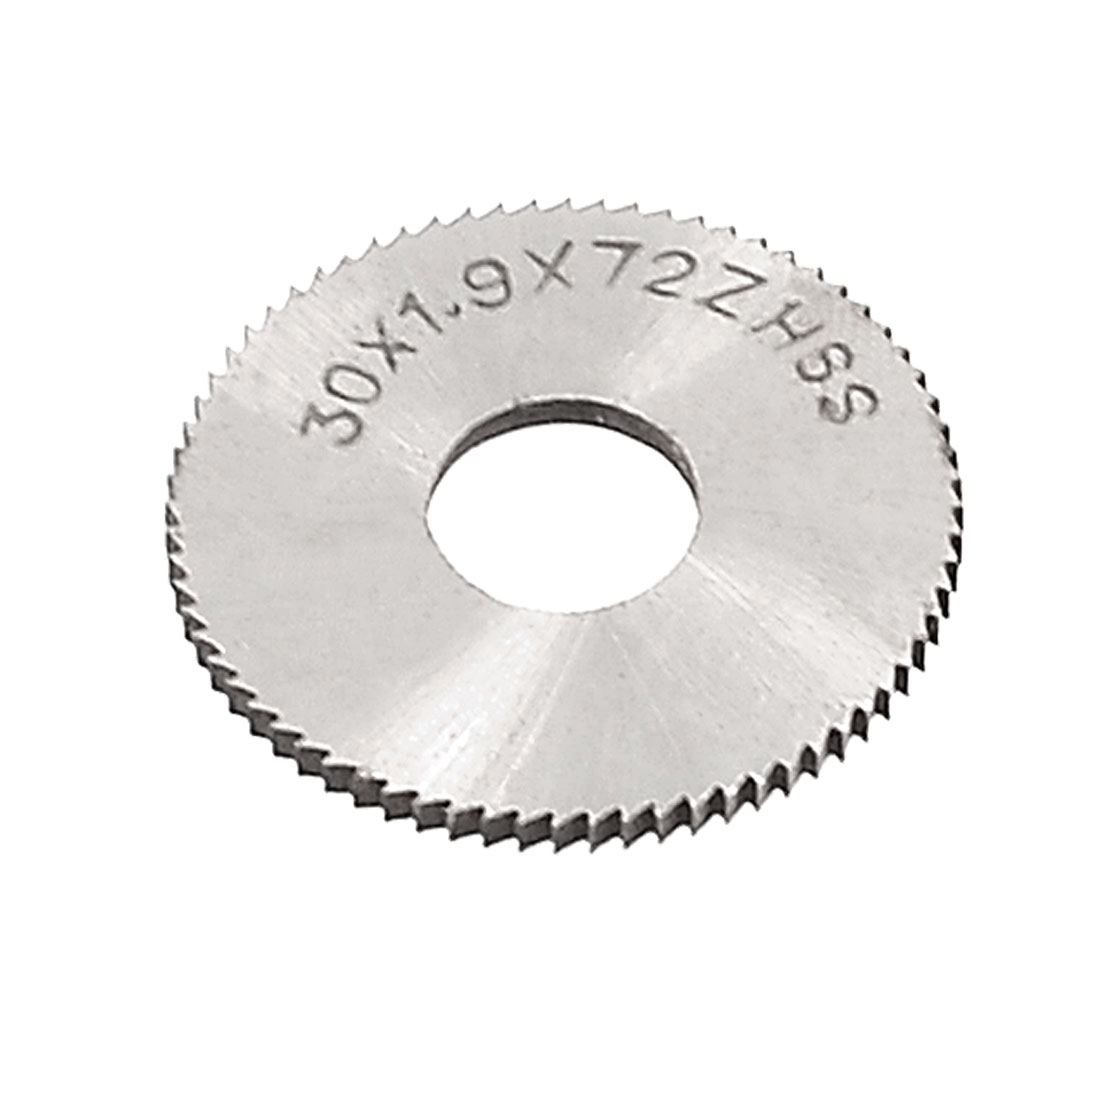 30mm OD 1.9mm Thickness 72T HSS Circular Slitting Saw